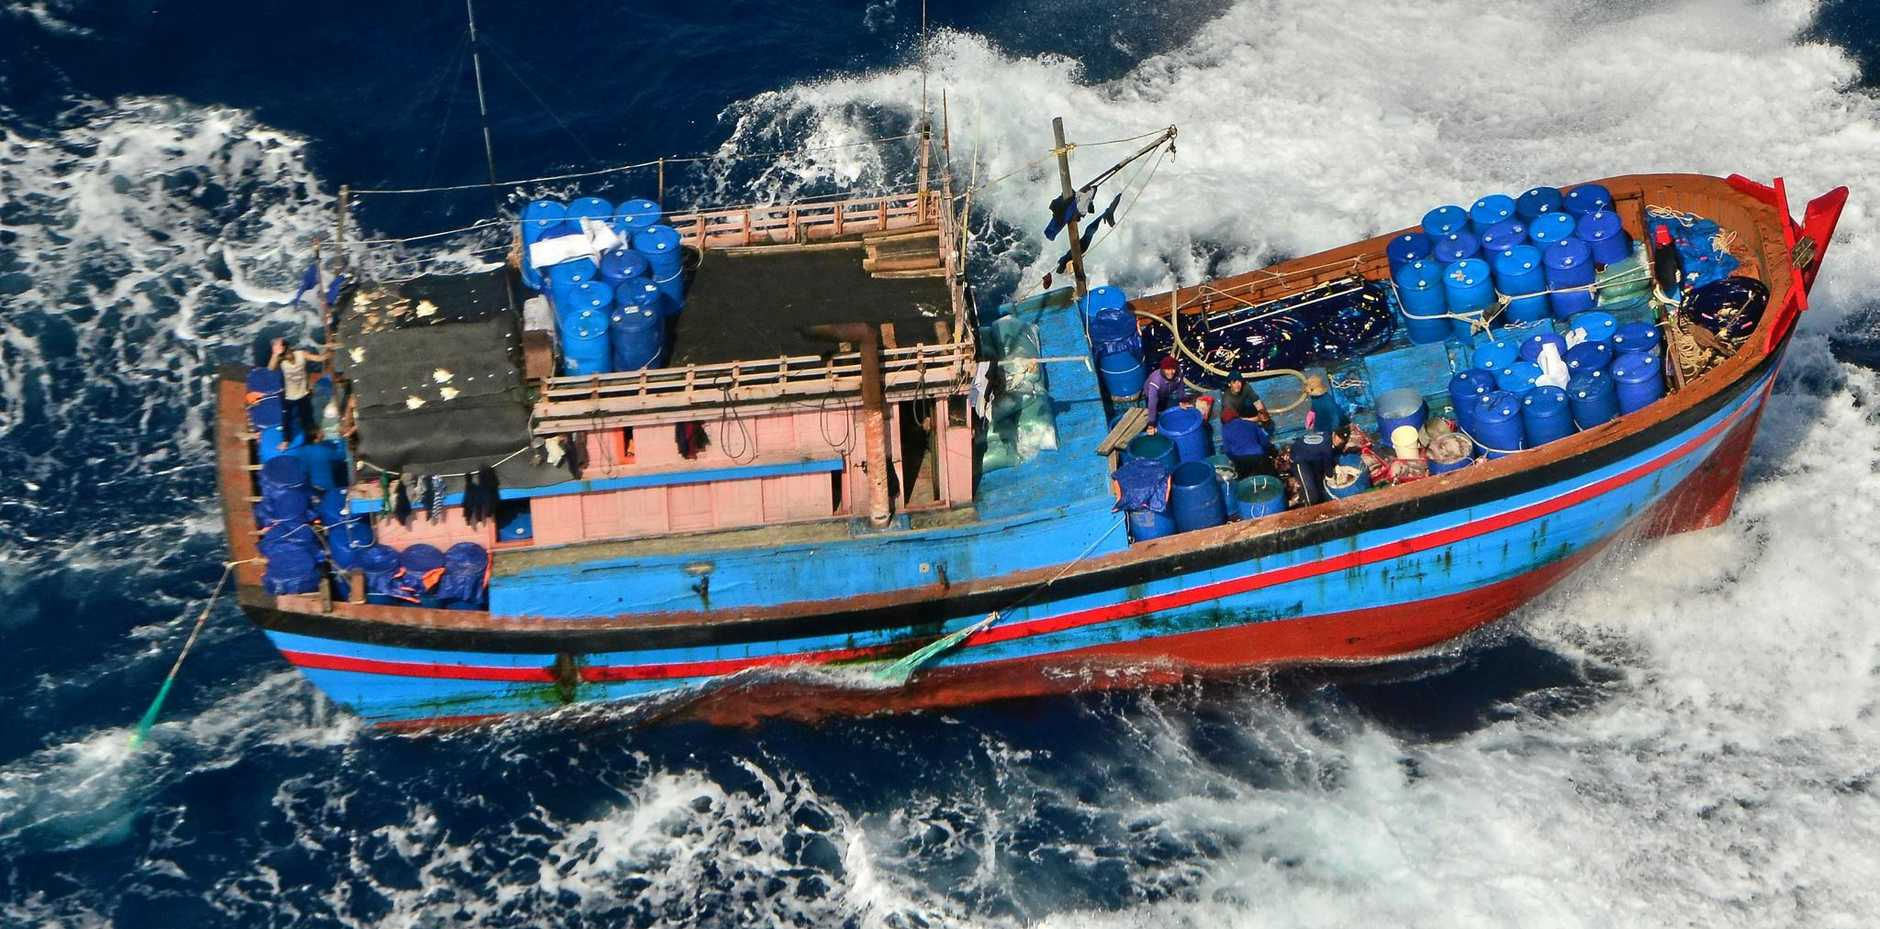 Fishermen on board this Vietnamese vessel were remanded in Gladstone yesterday, suspected of illegally catching sea cucumbers.